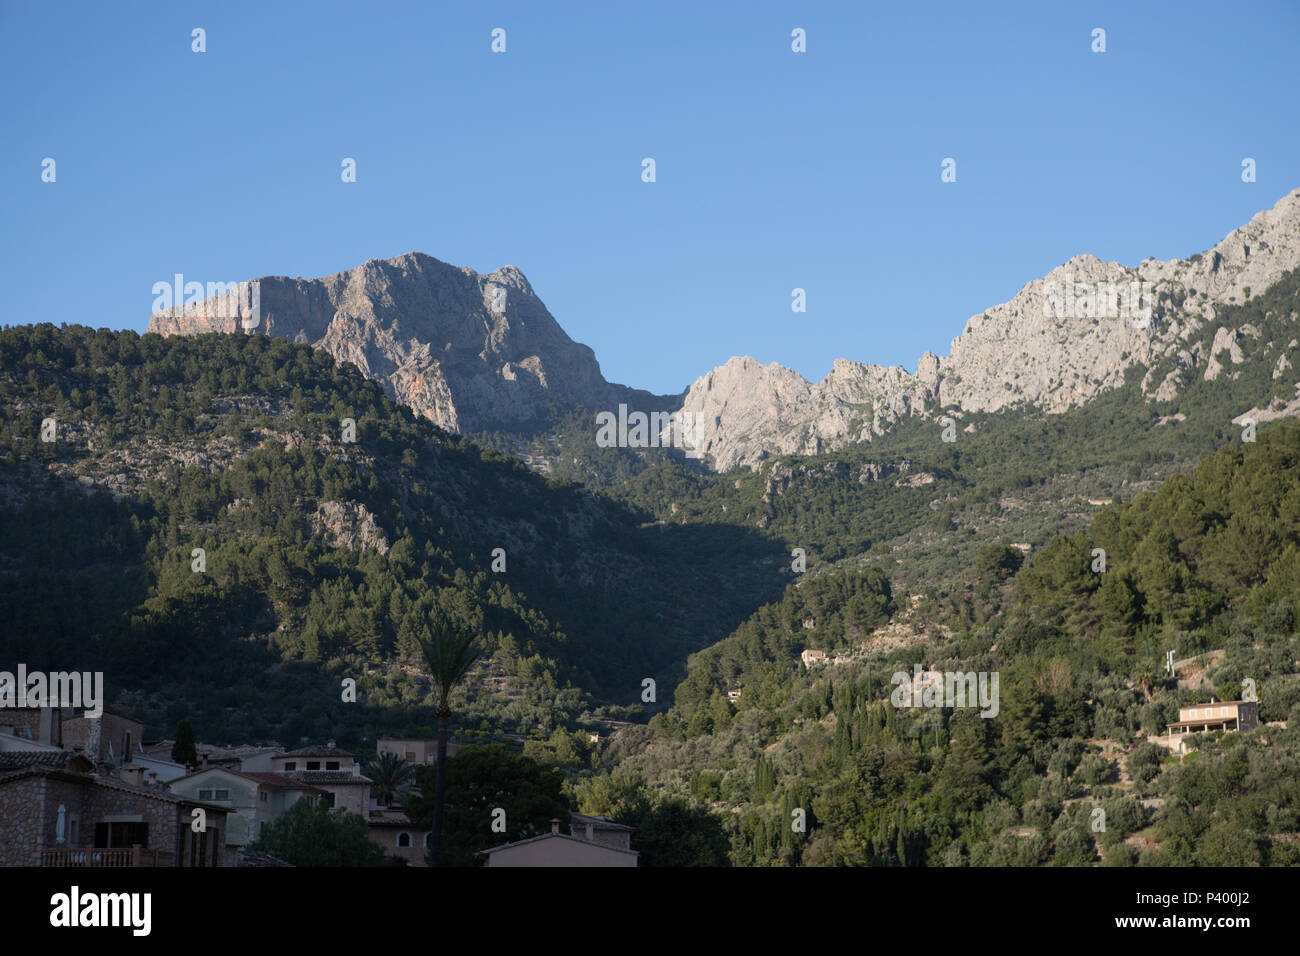 Puig Major mountain peak view from Fornalutx, Mallorca Balearic Spain - Stock Image